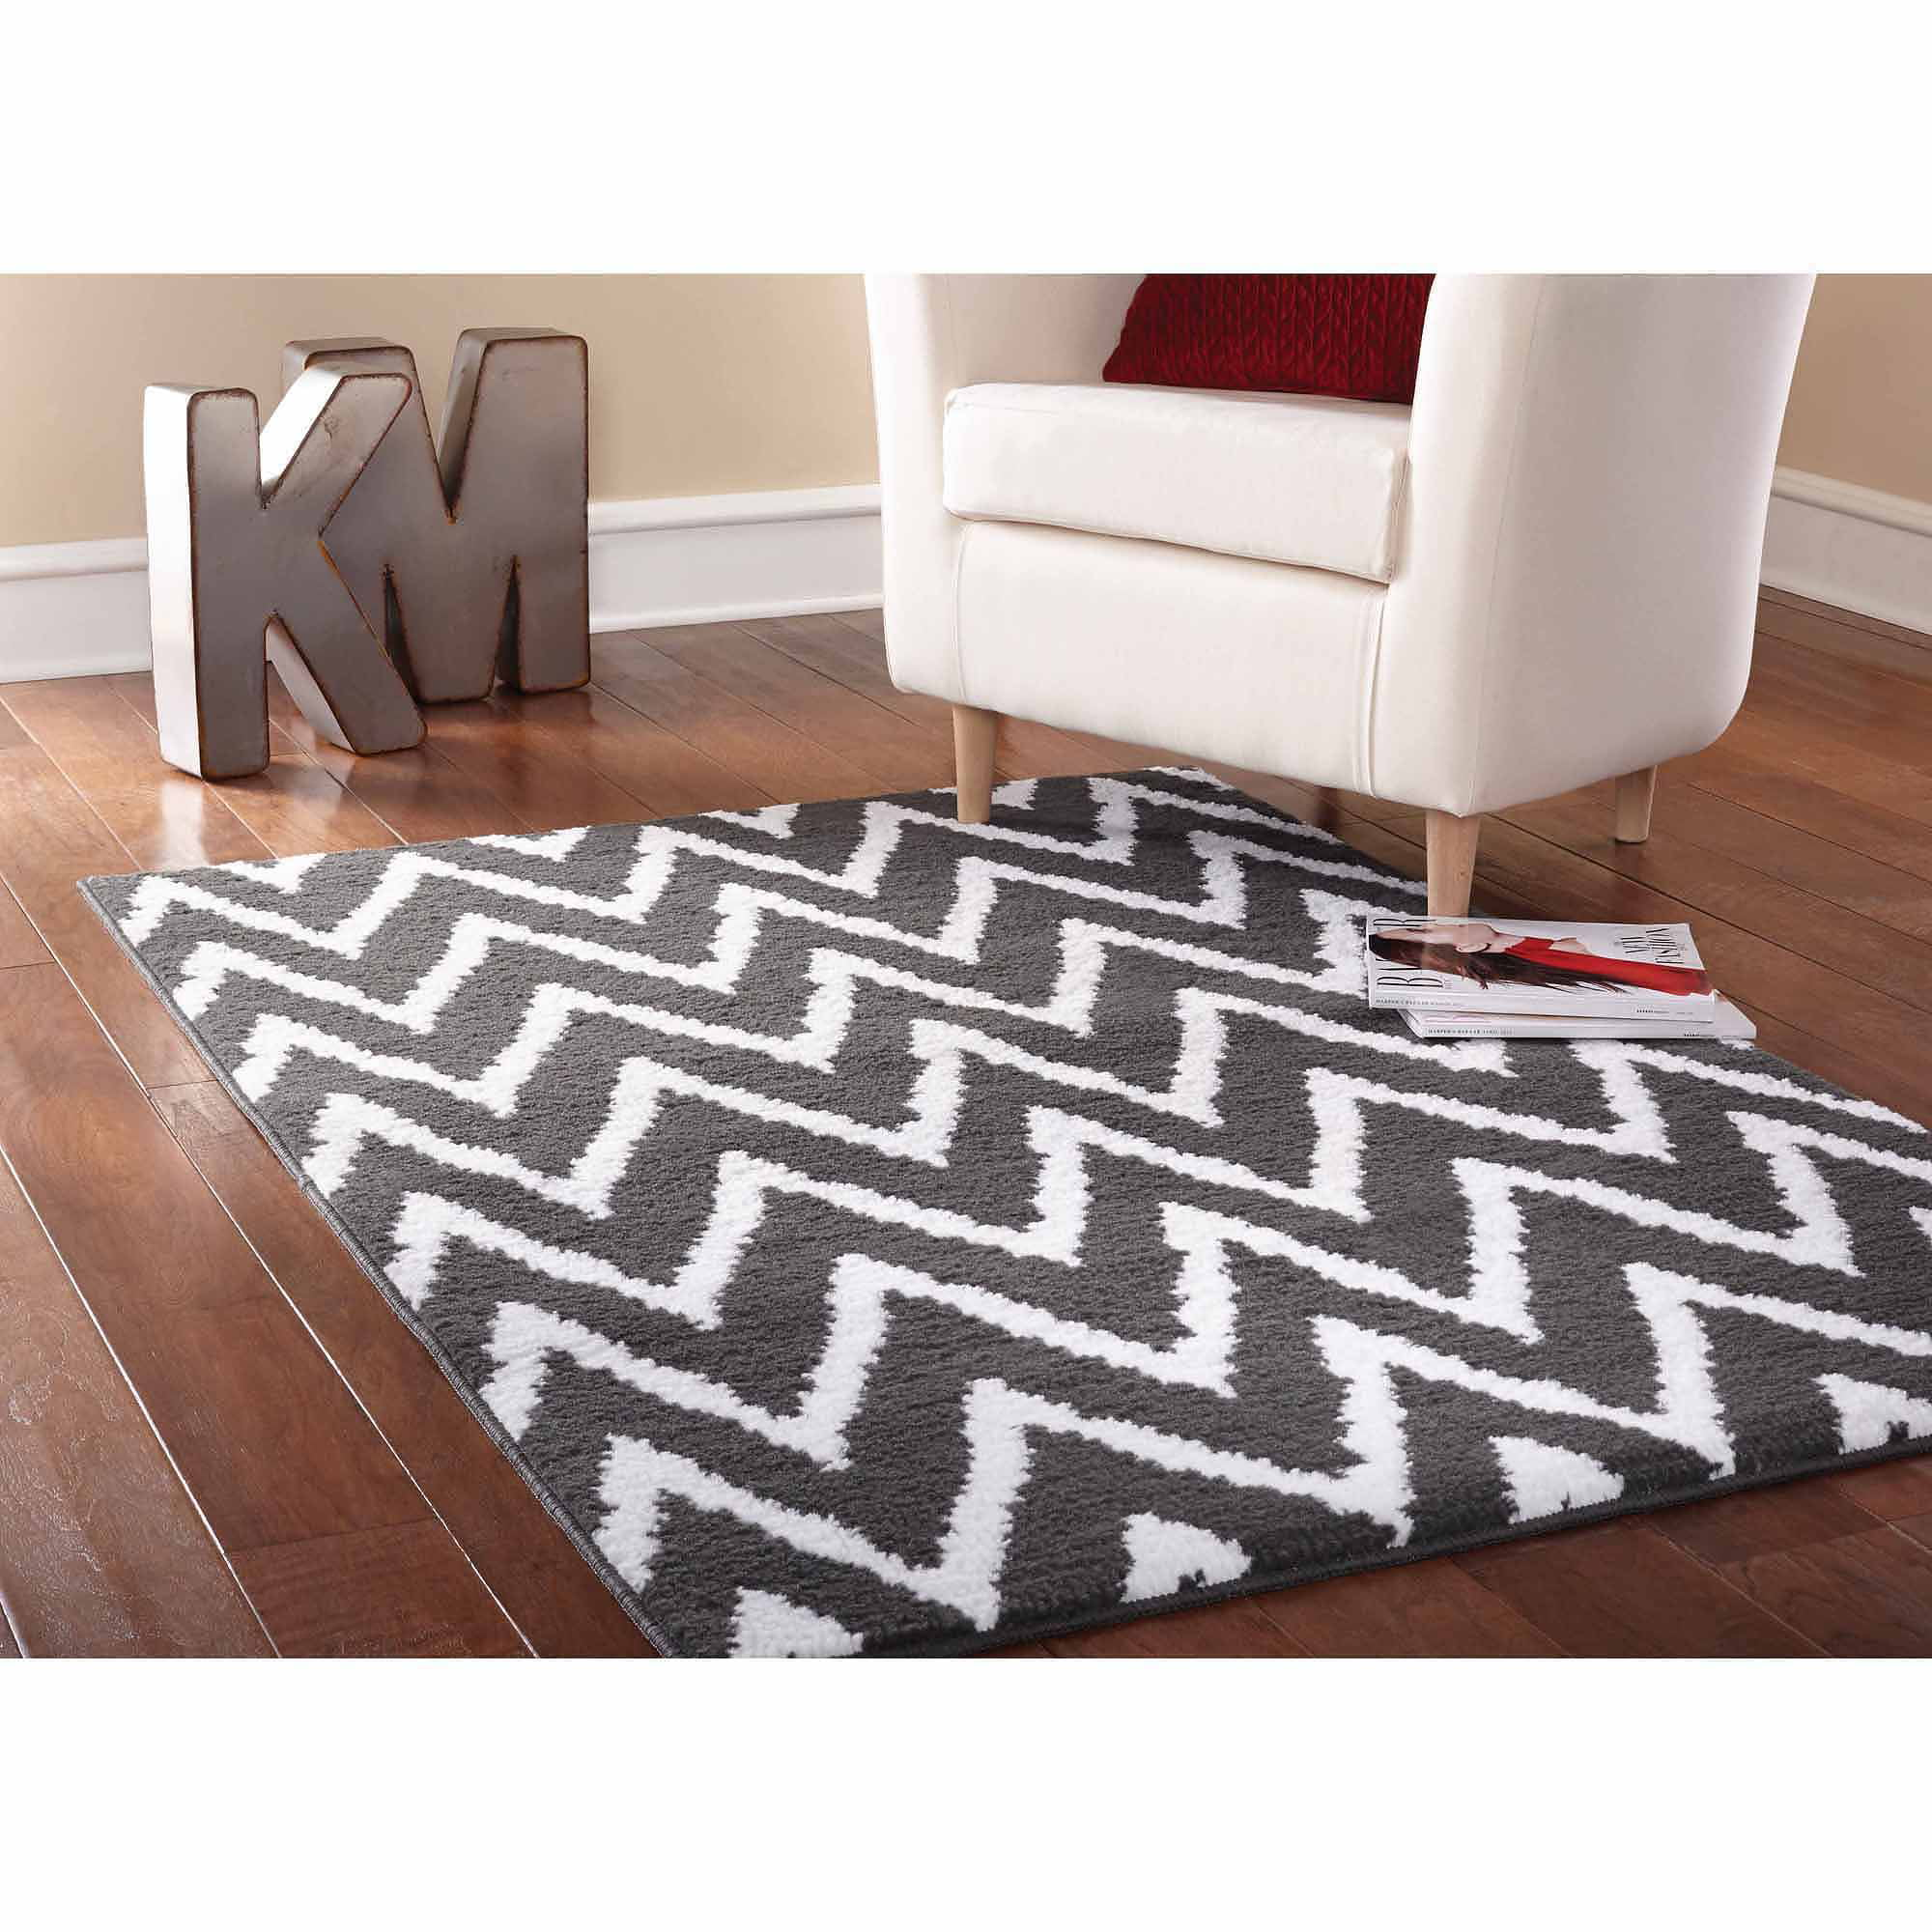 Gray white carpet rug distressed zig zag rugs for kids for Carpet for kids rooms